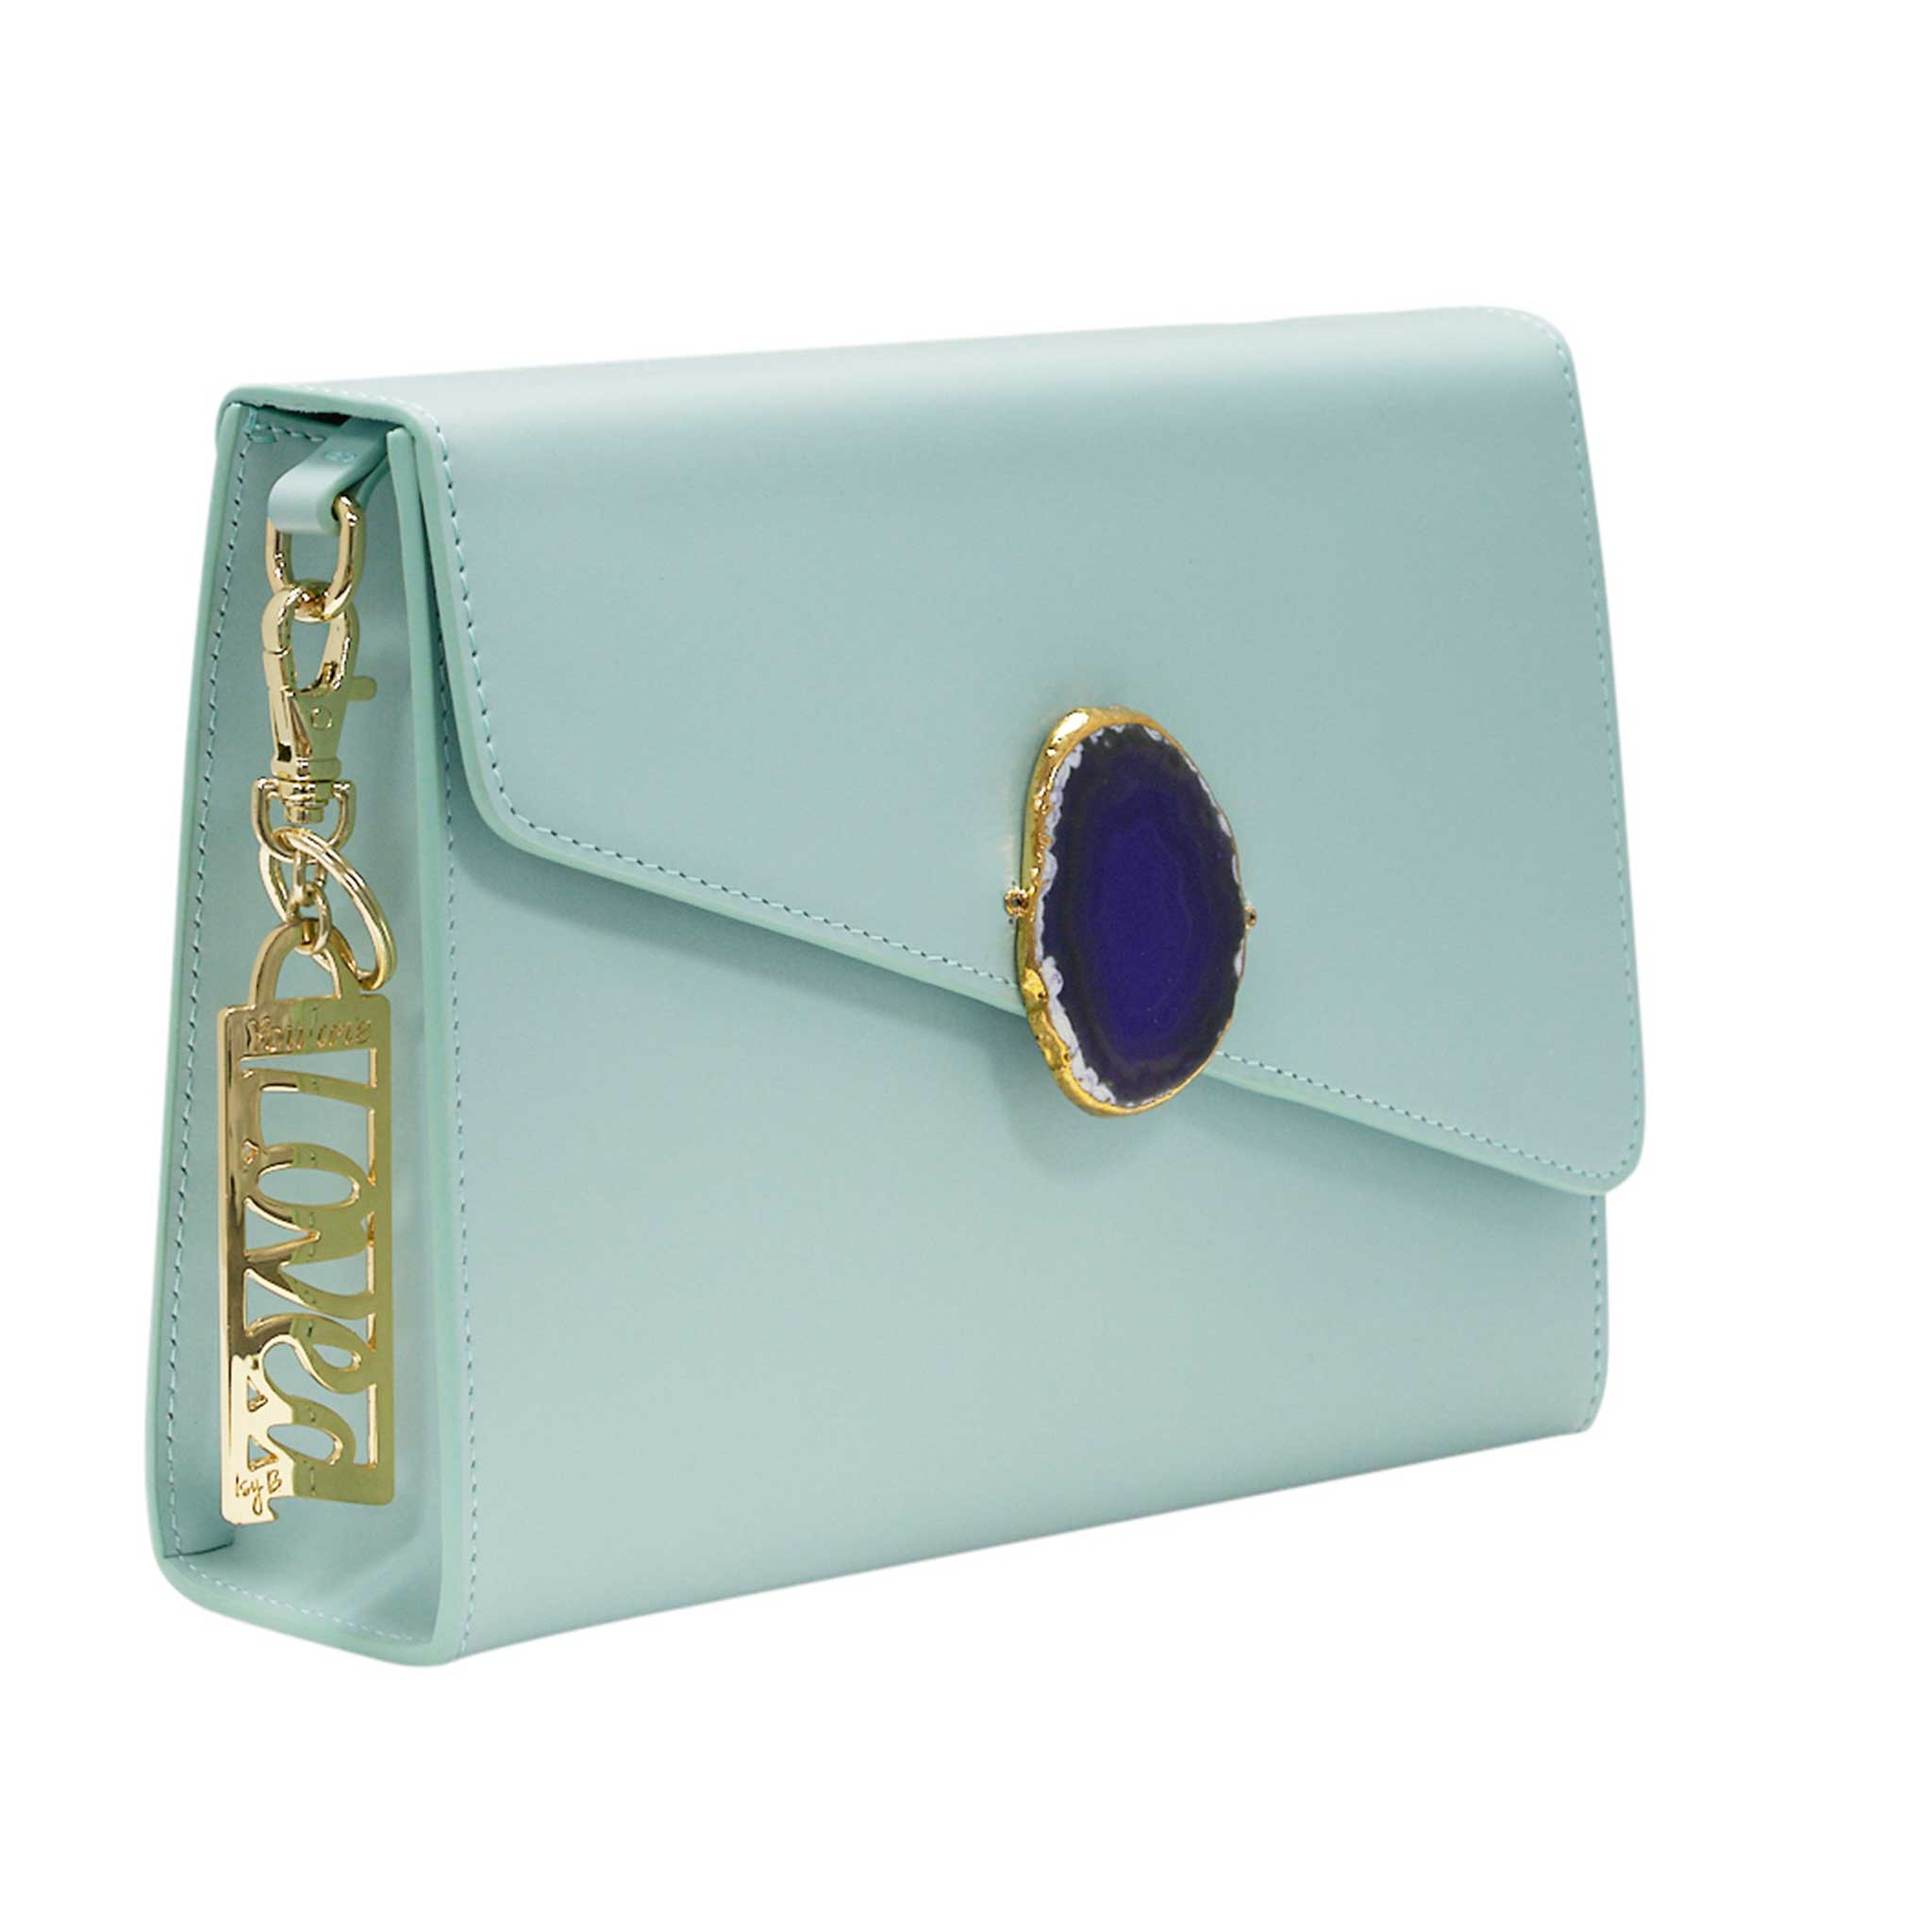 LOVED BAG - MOONSTONE WHITE LEATHER WITH BLUE AGATE - 1.02.006.51